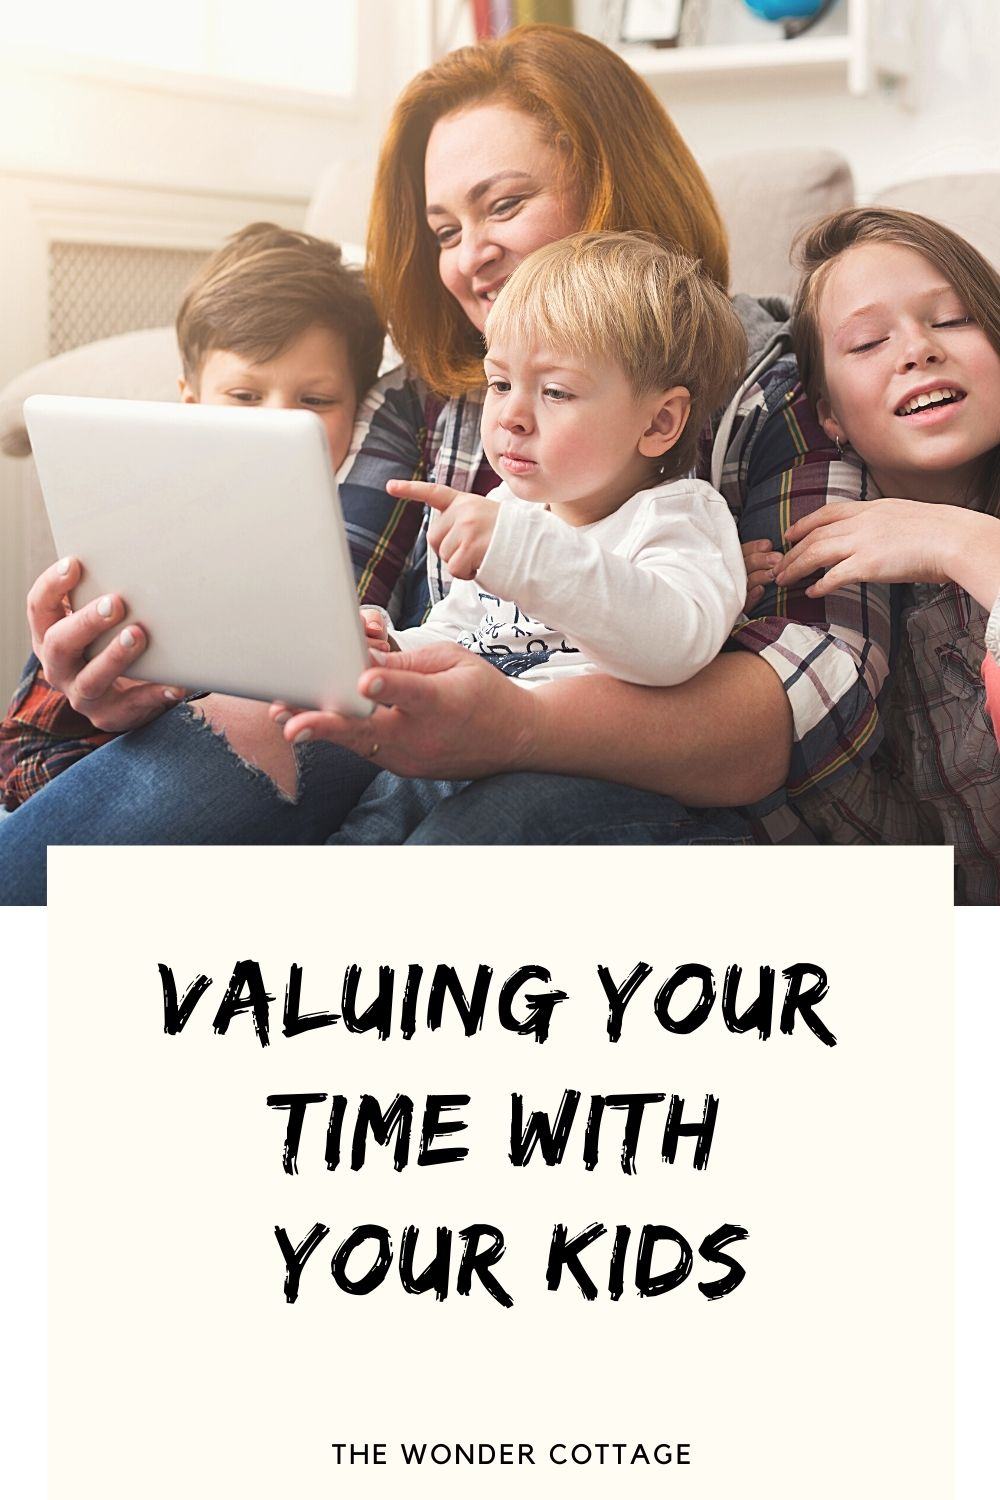 valuing your time with your kids